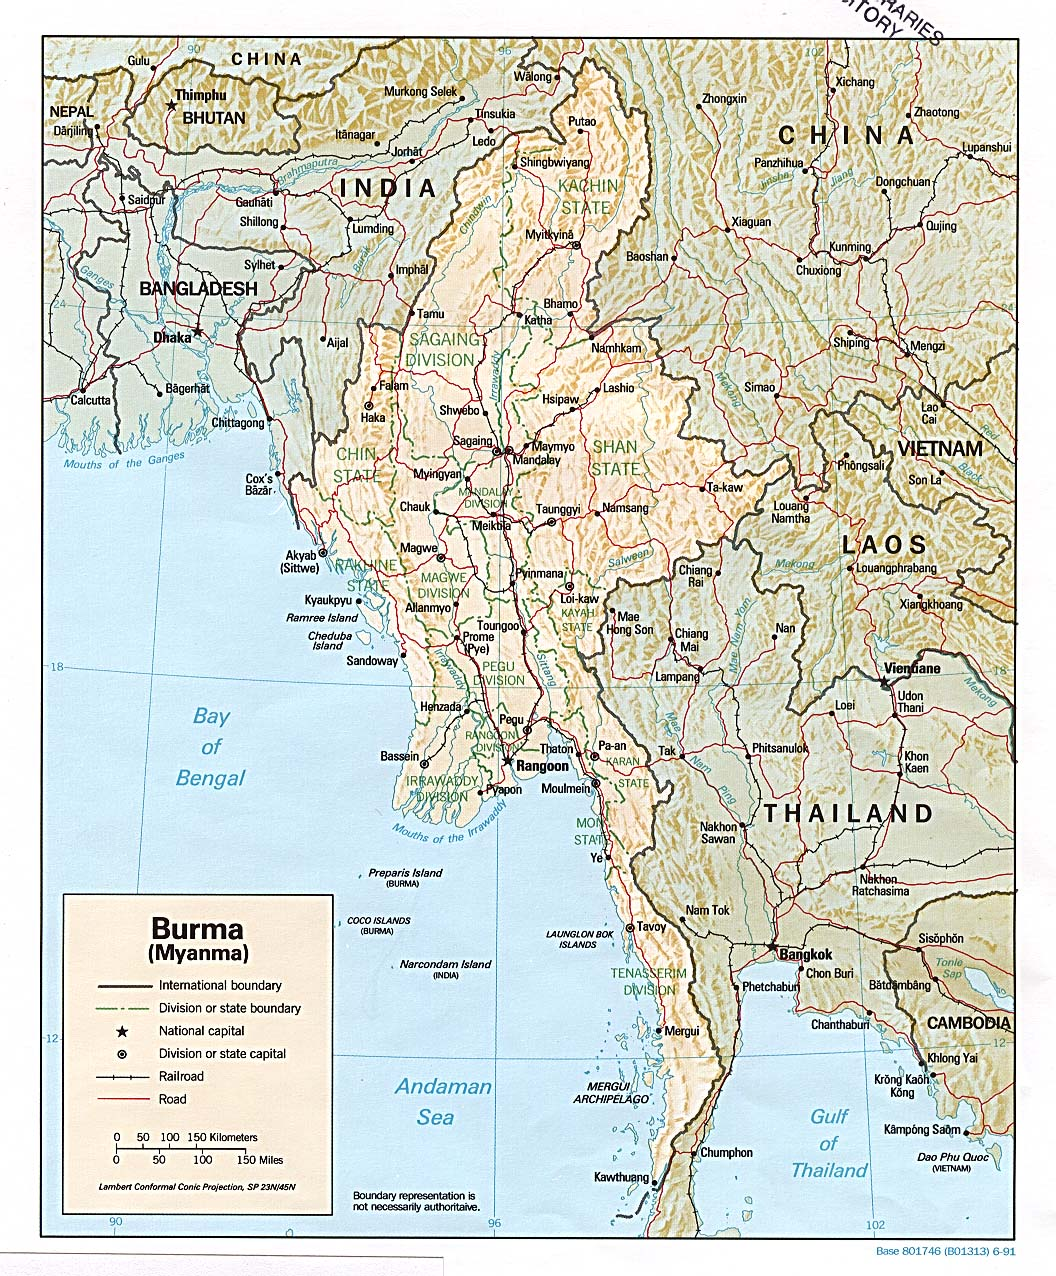 Online Burma Library > Reading Room > Maps and satellite imagery